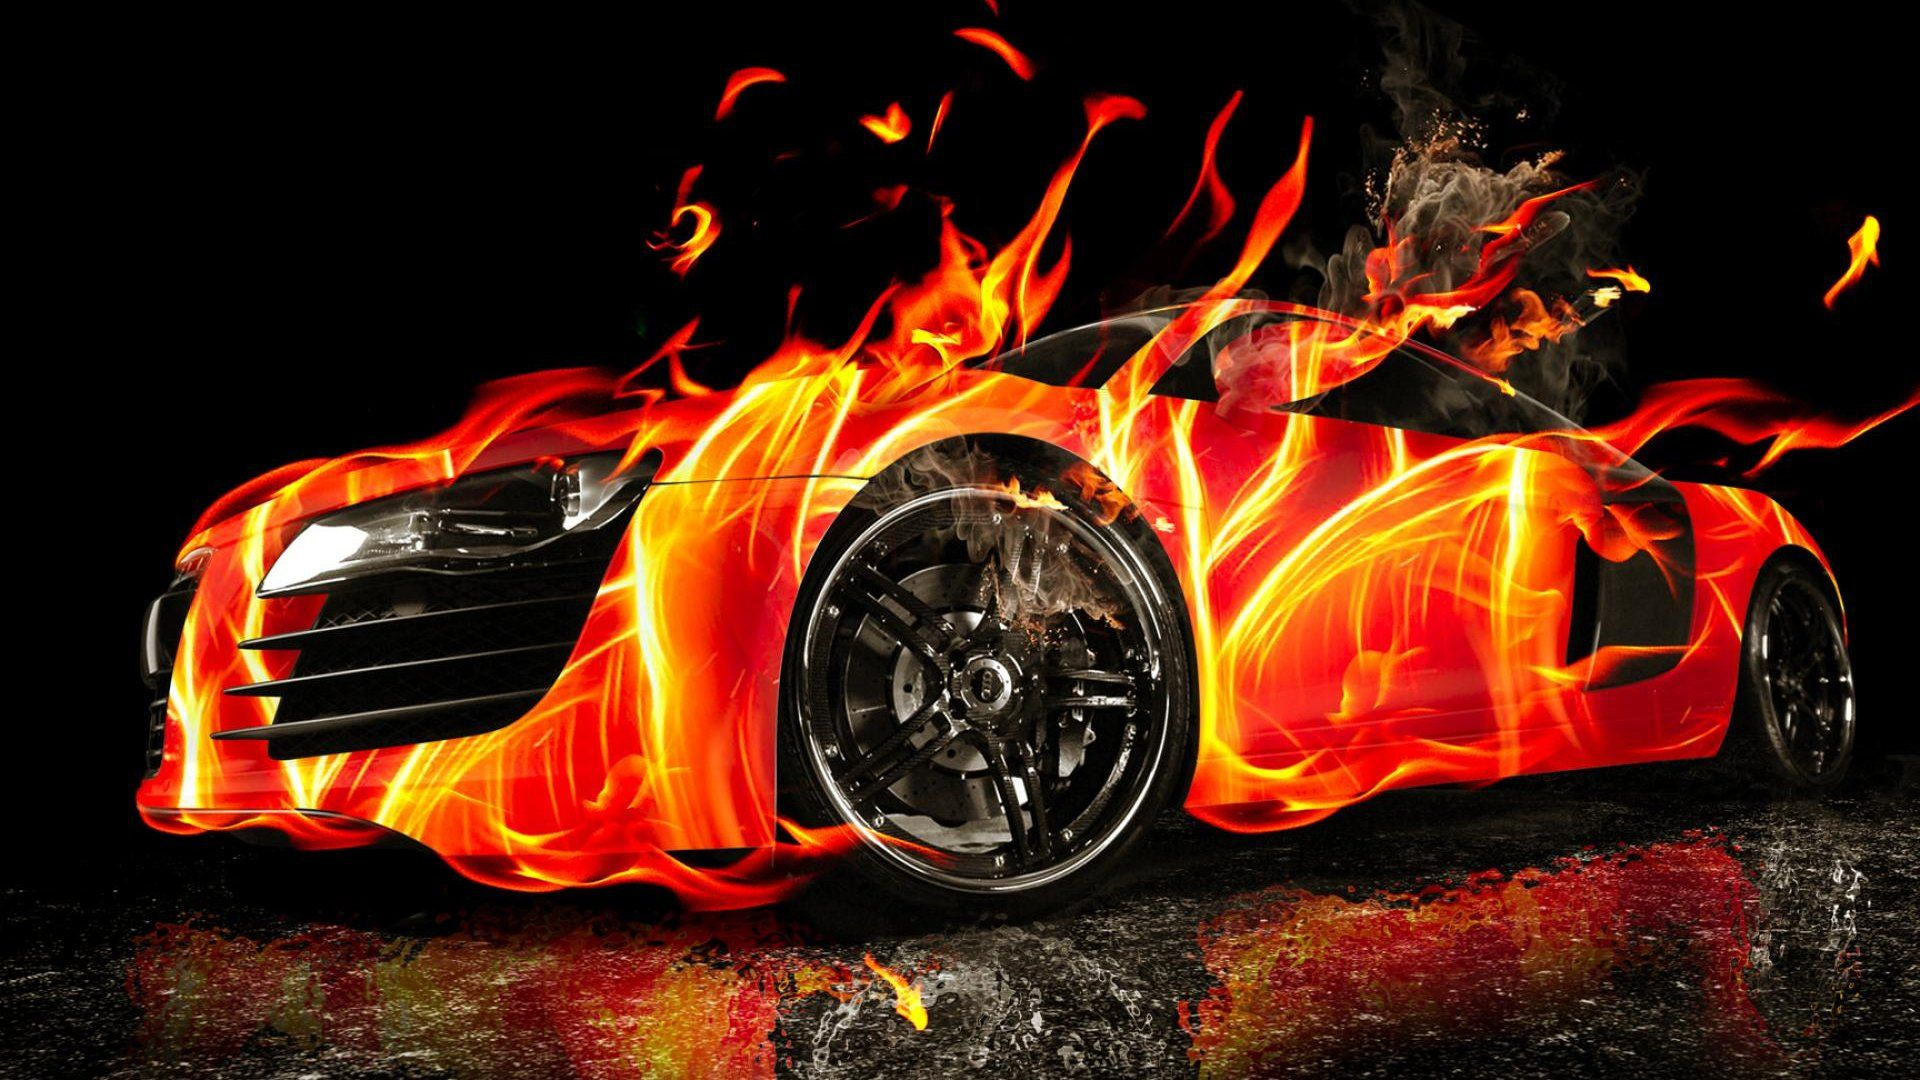 Hot Wheels Car Wallpaper 1920 1080 High Definition Wallpaper Cool Wallpapers Cars Sports Car Wallpaper Cool Cars